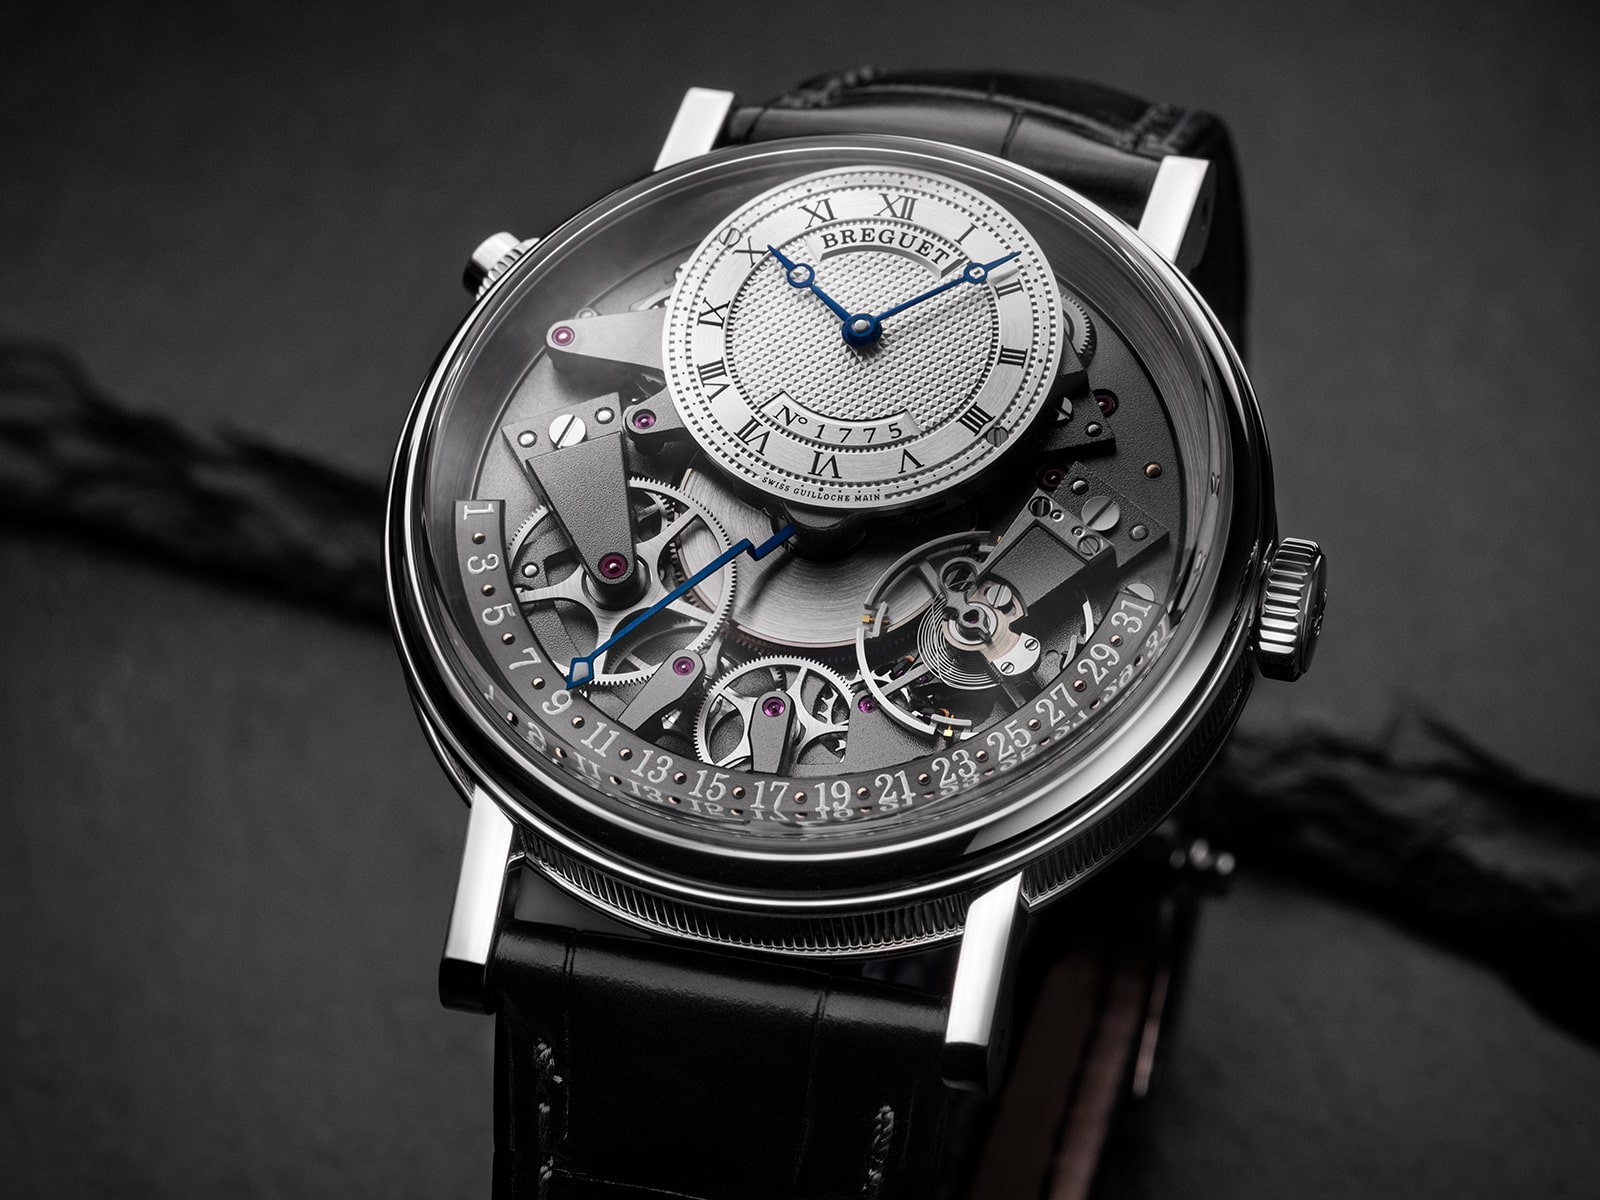 7597bb-g1-9wu-breguet-tradition-quantieme-retrograde-7597-white-gold-2.jpg